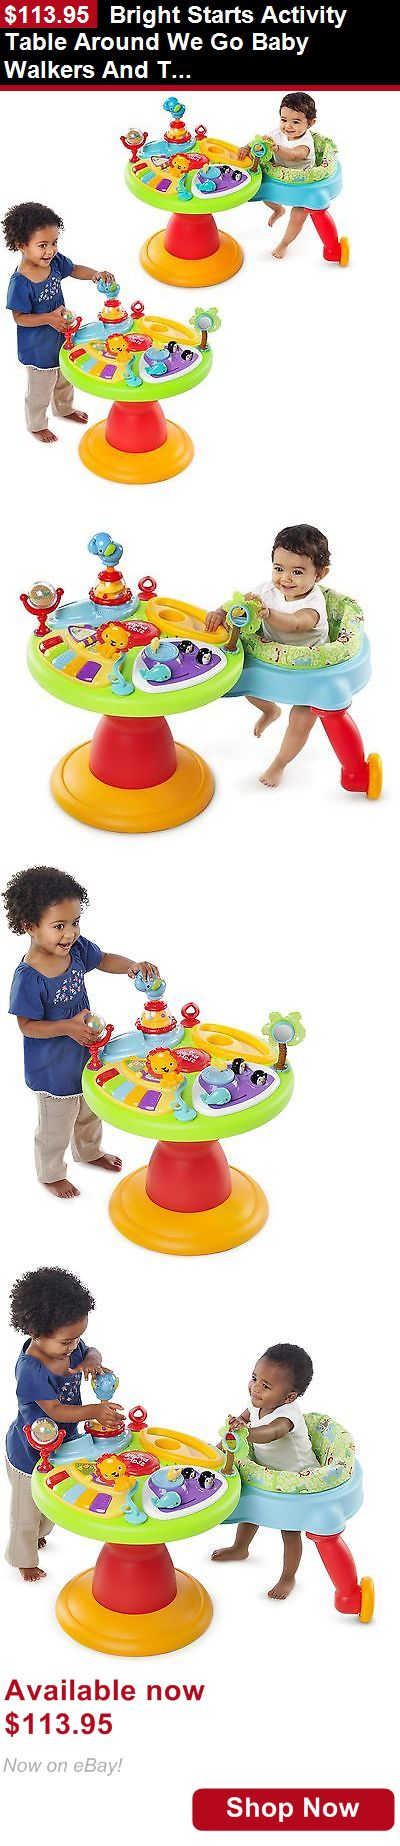 Baby activity centers: Bright Starts Activity Table Around We Go Baby Walkers And Toddler Play Center BUY IT NOW ONLY: $113.95